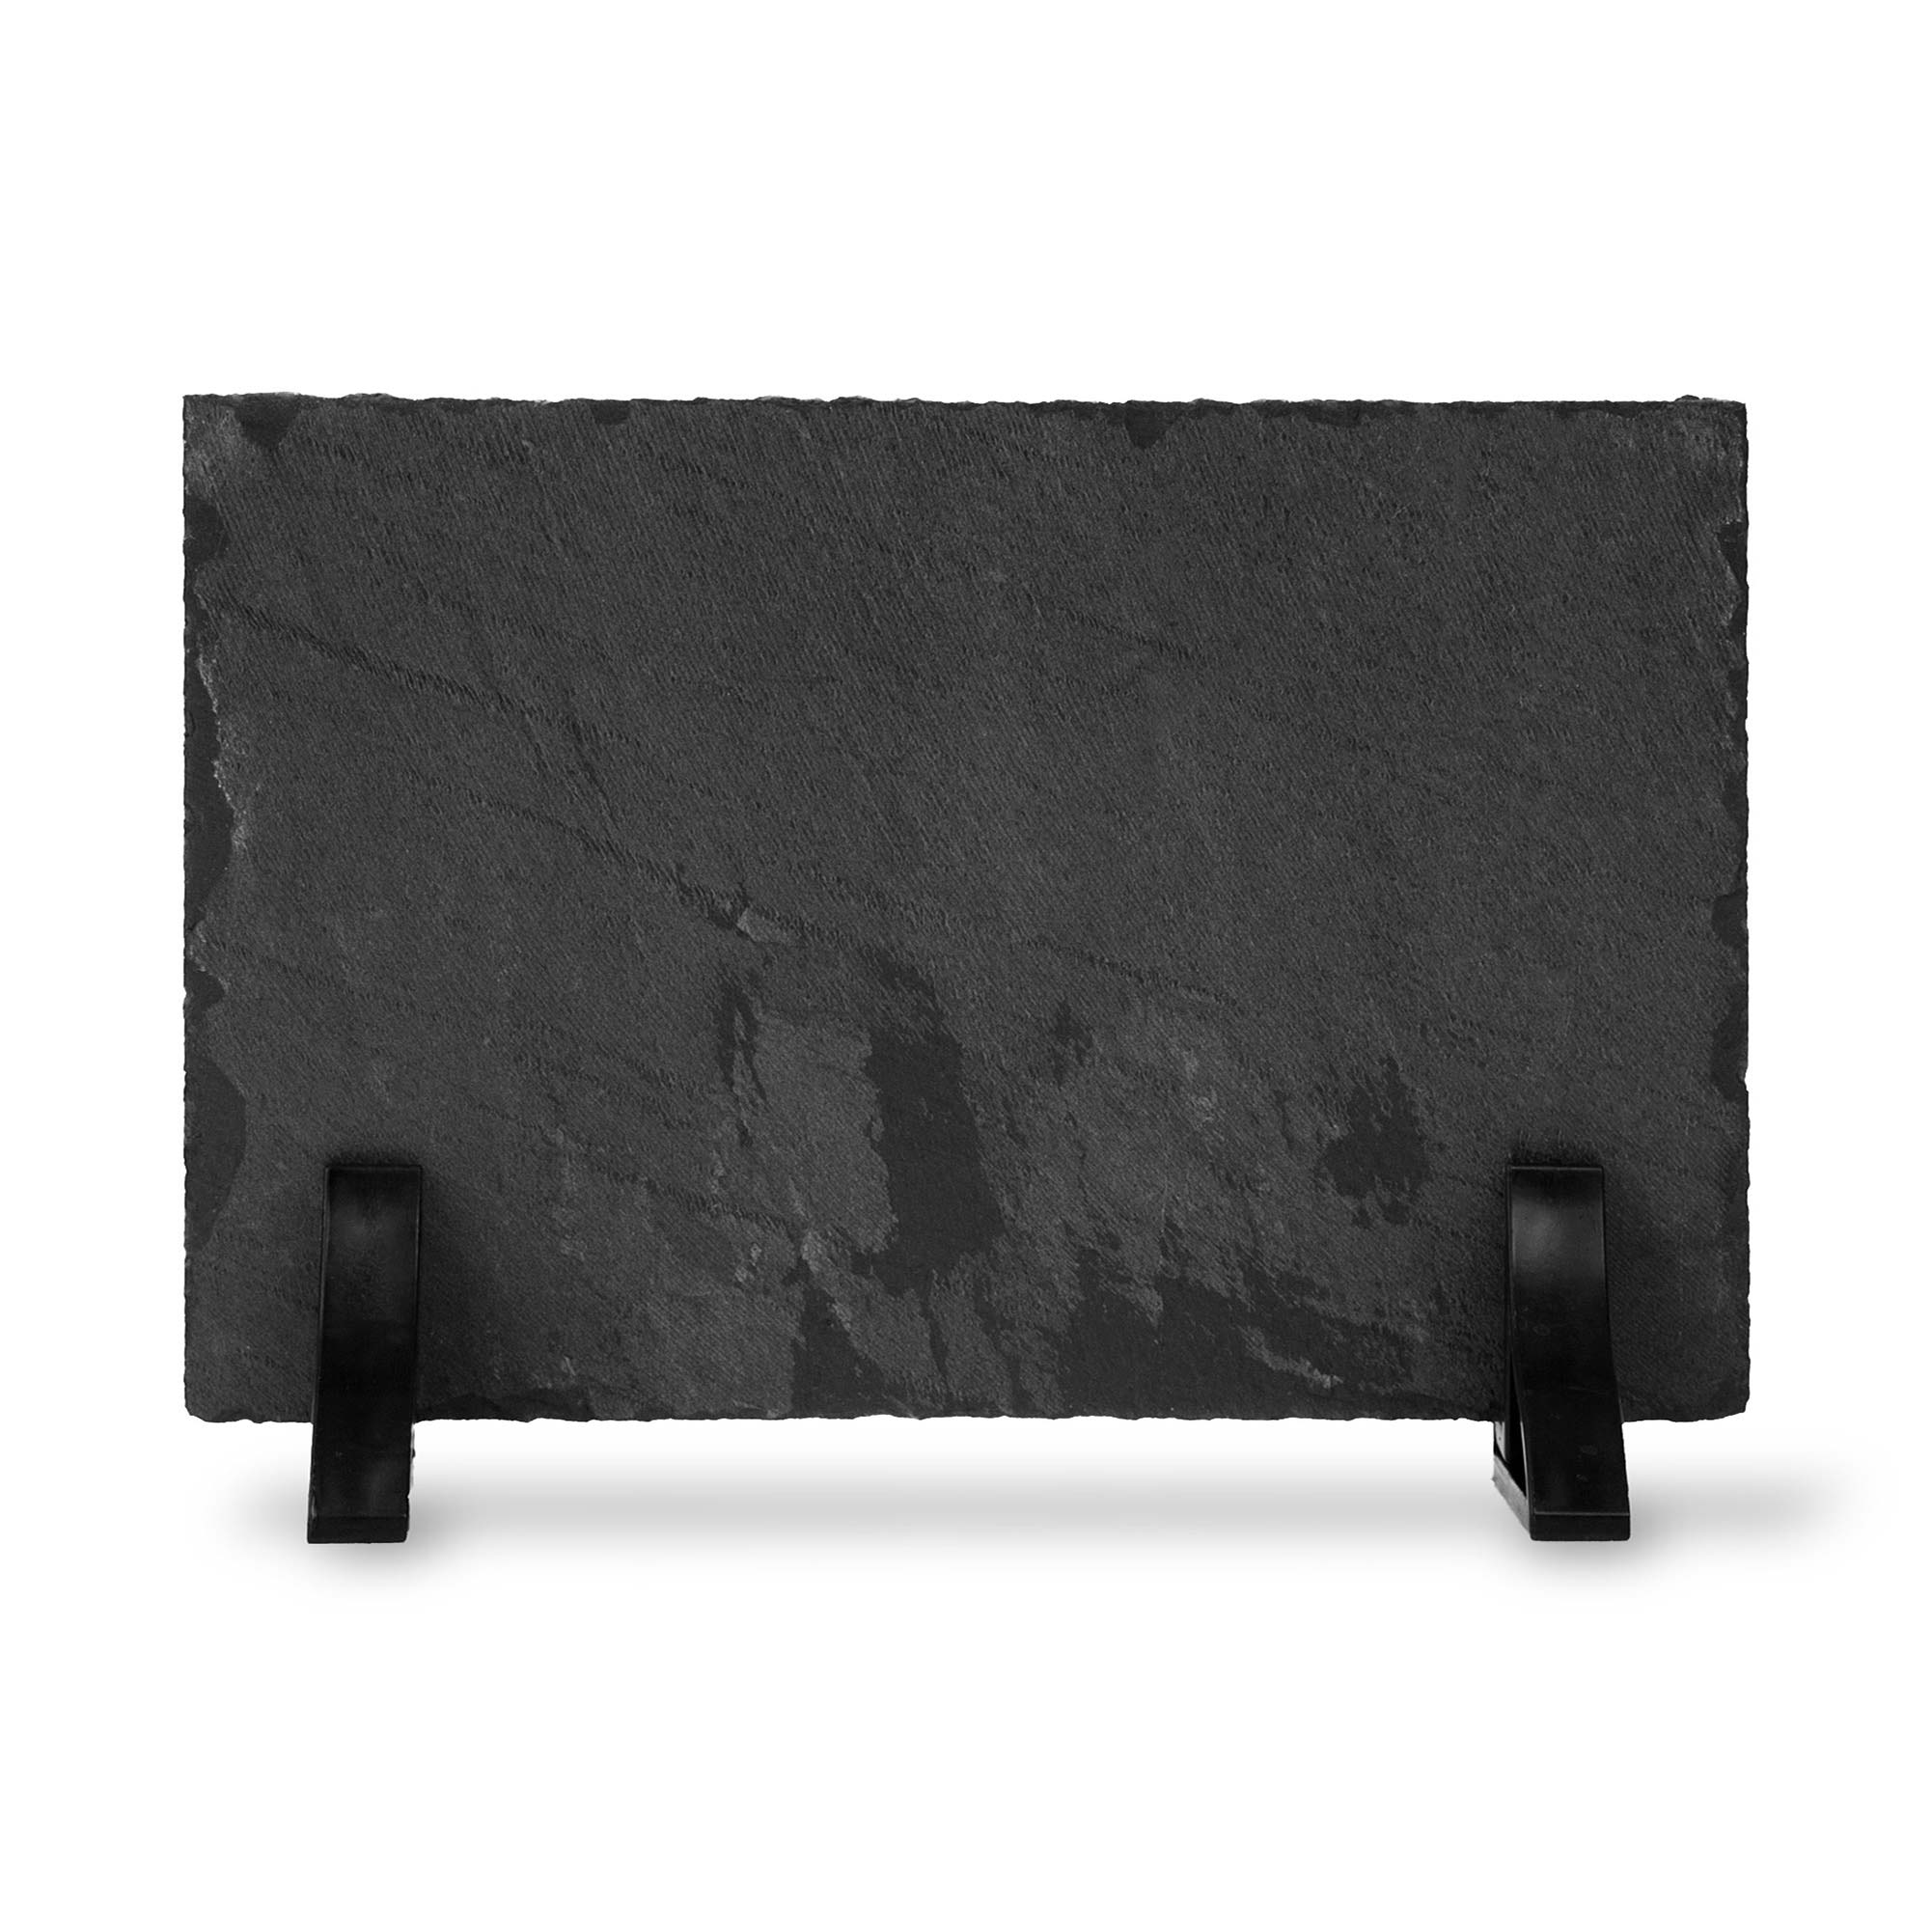 Vintage-Retro-Camera-3-Rock-Slate-Picture-Frame-20x15-cm thumbnail 3